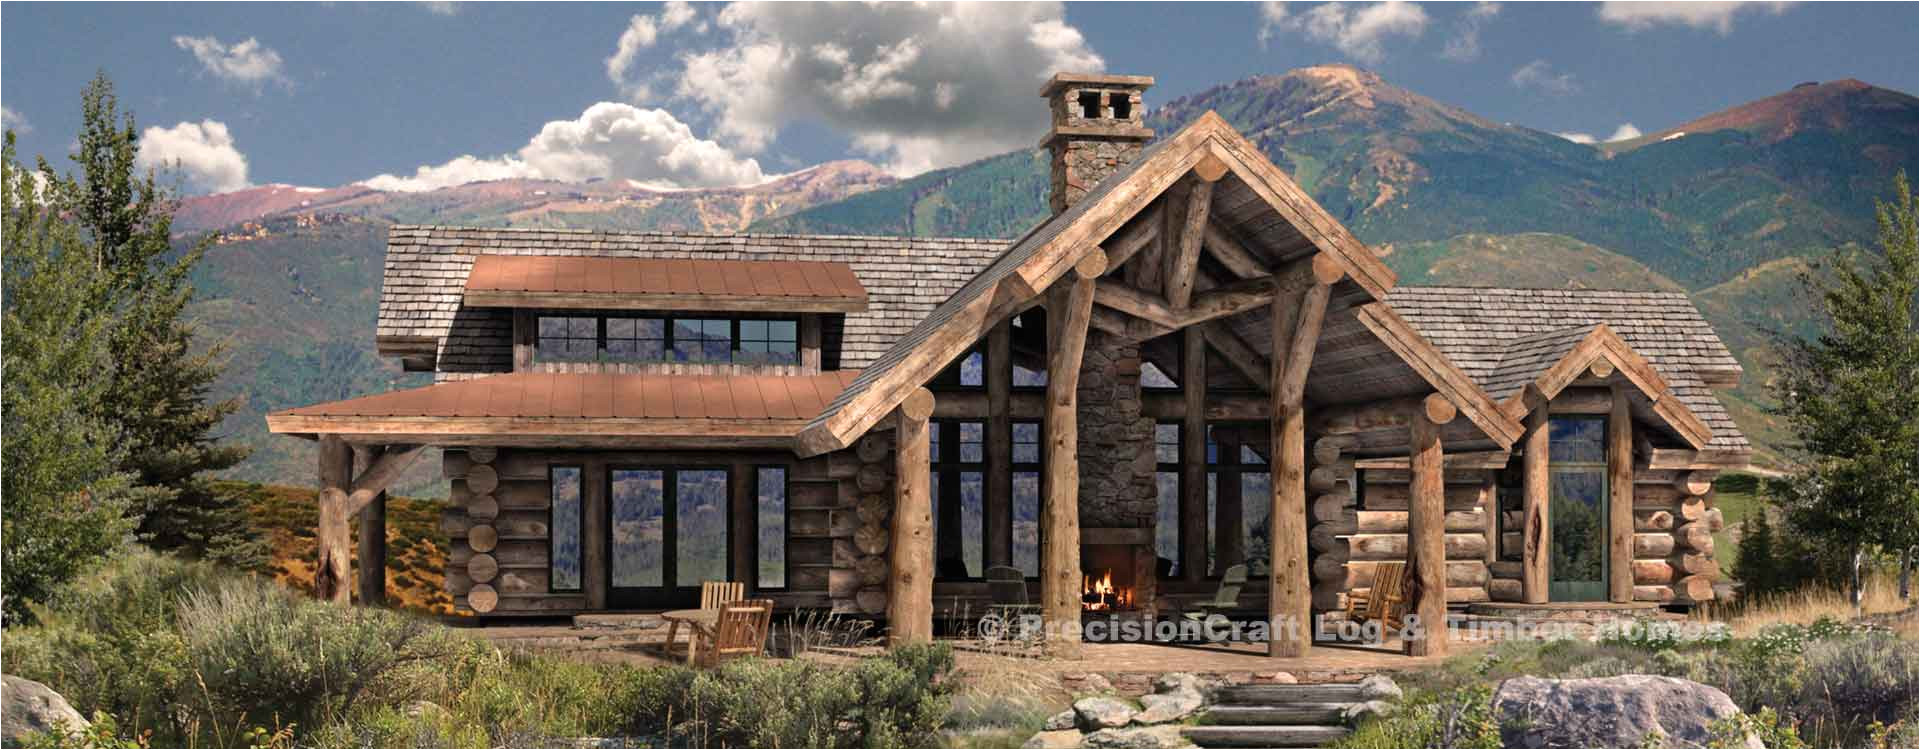 Precisioncraft Log Home Floor Plans Cumberland Handcrafted Log Plan